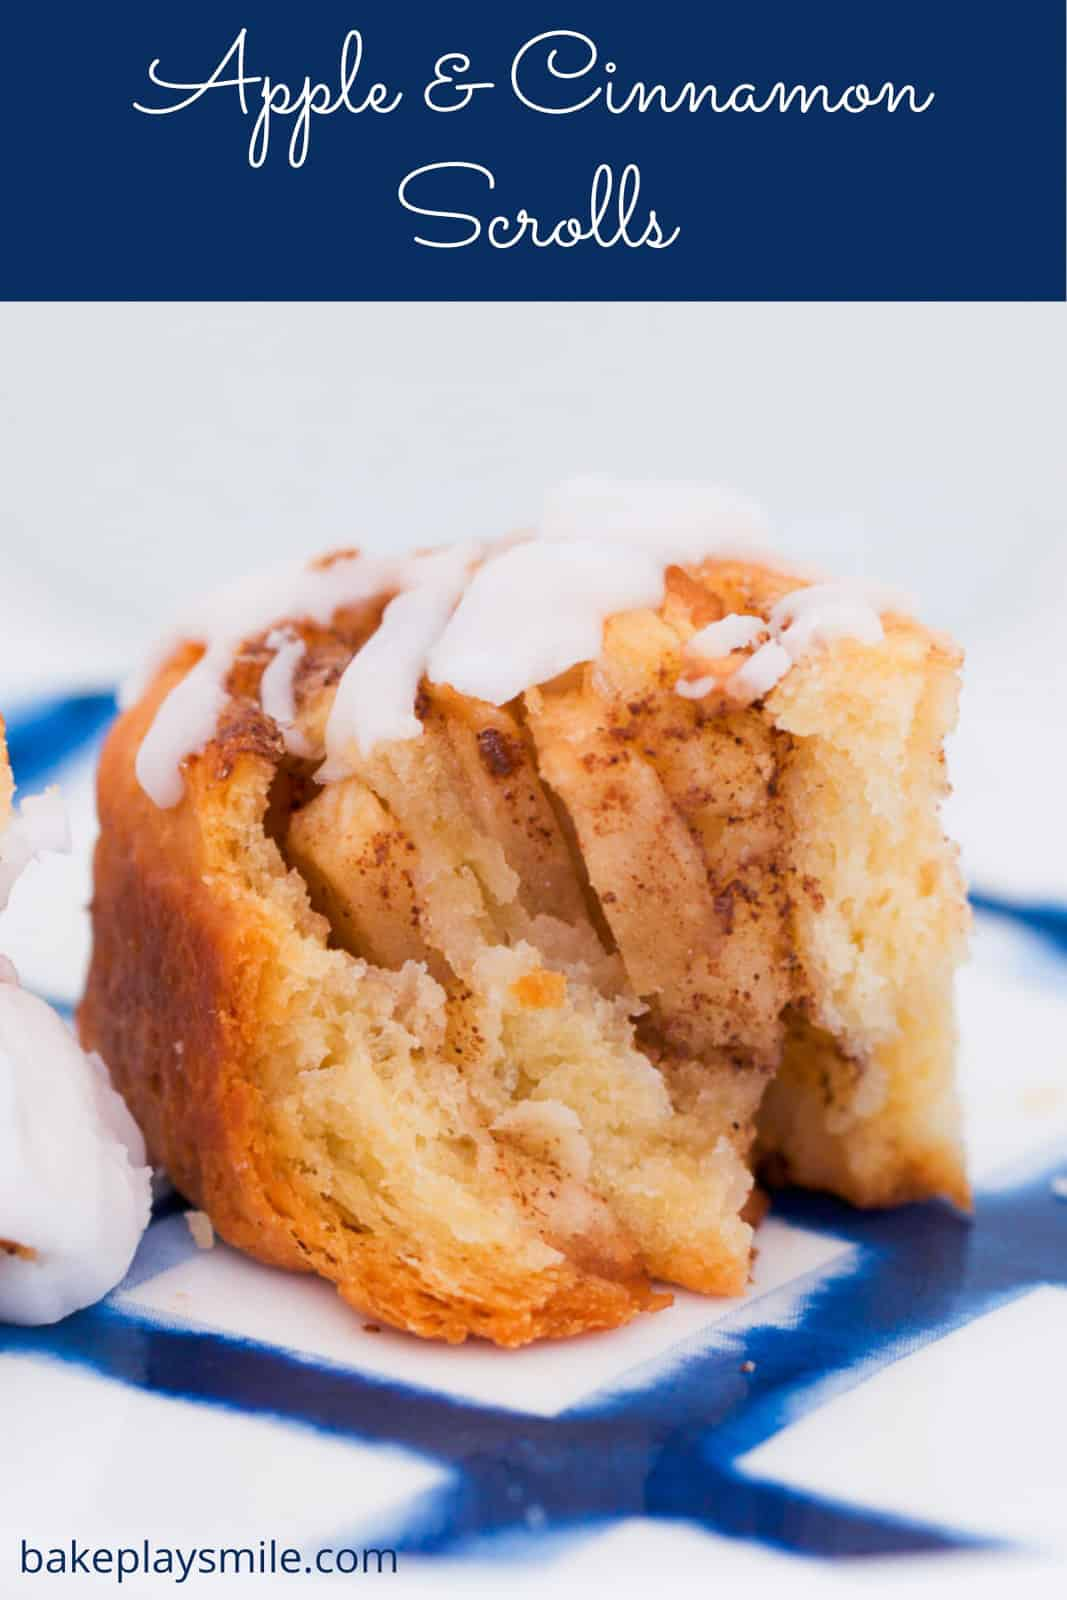 A homemade cinnamon scroll with chunks of apple and an icing sugar glaze.